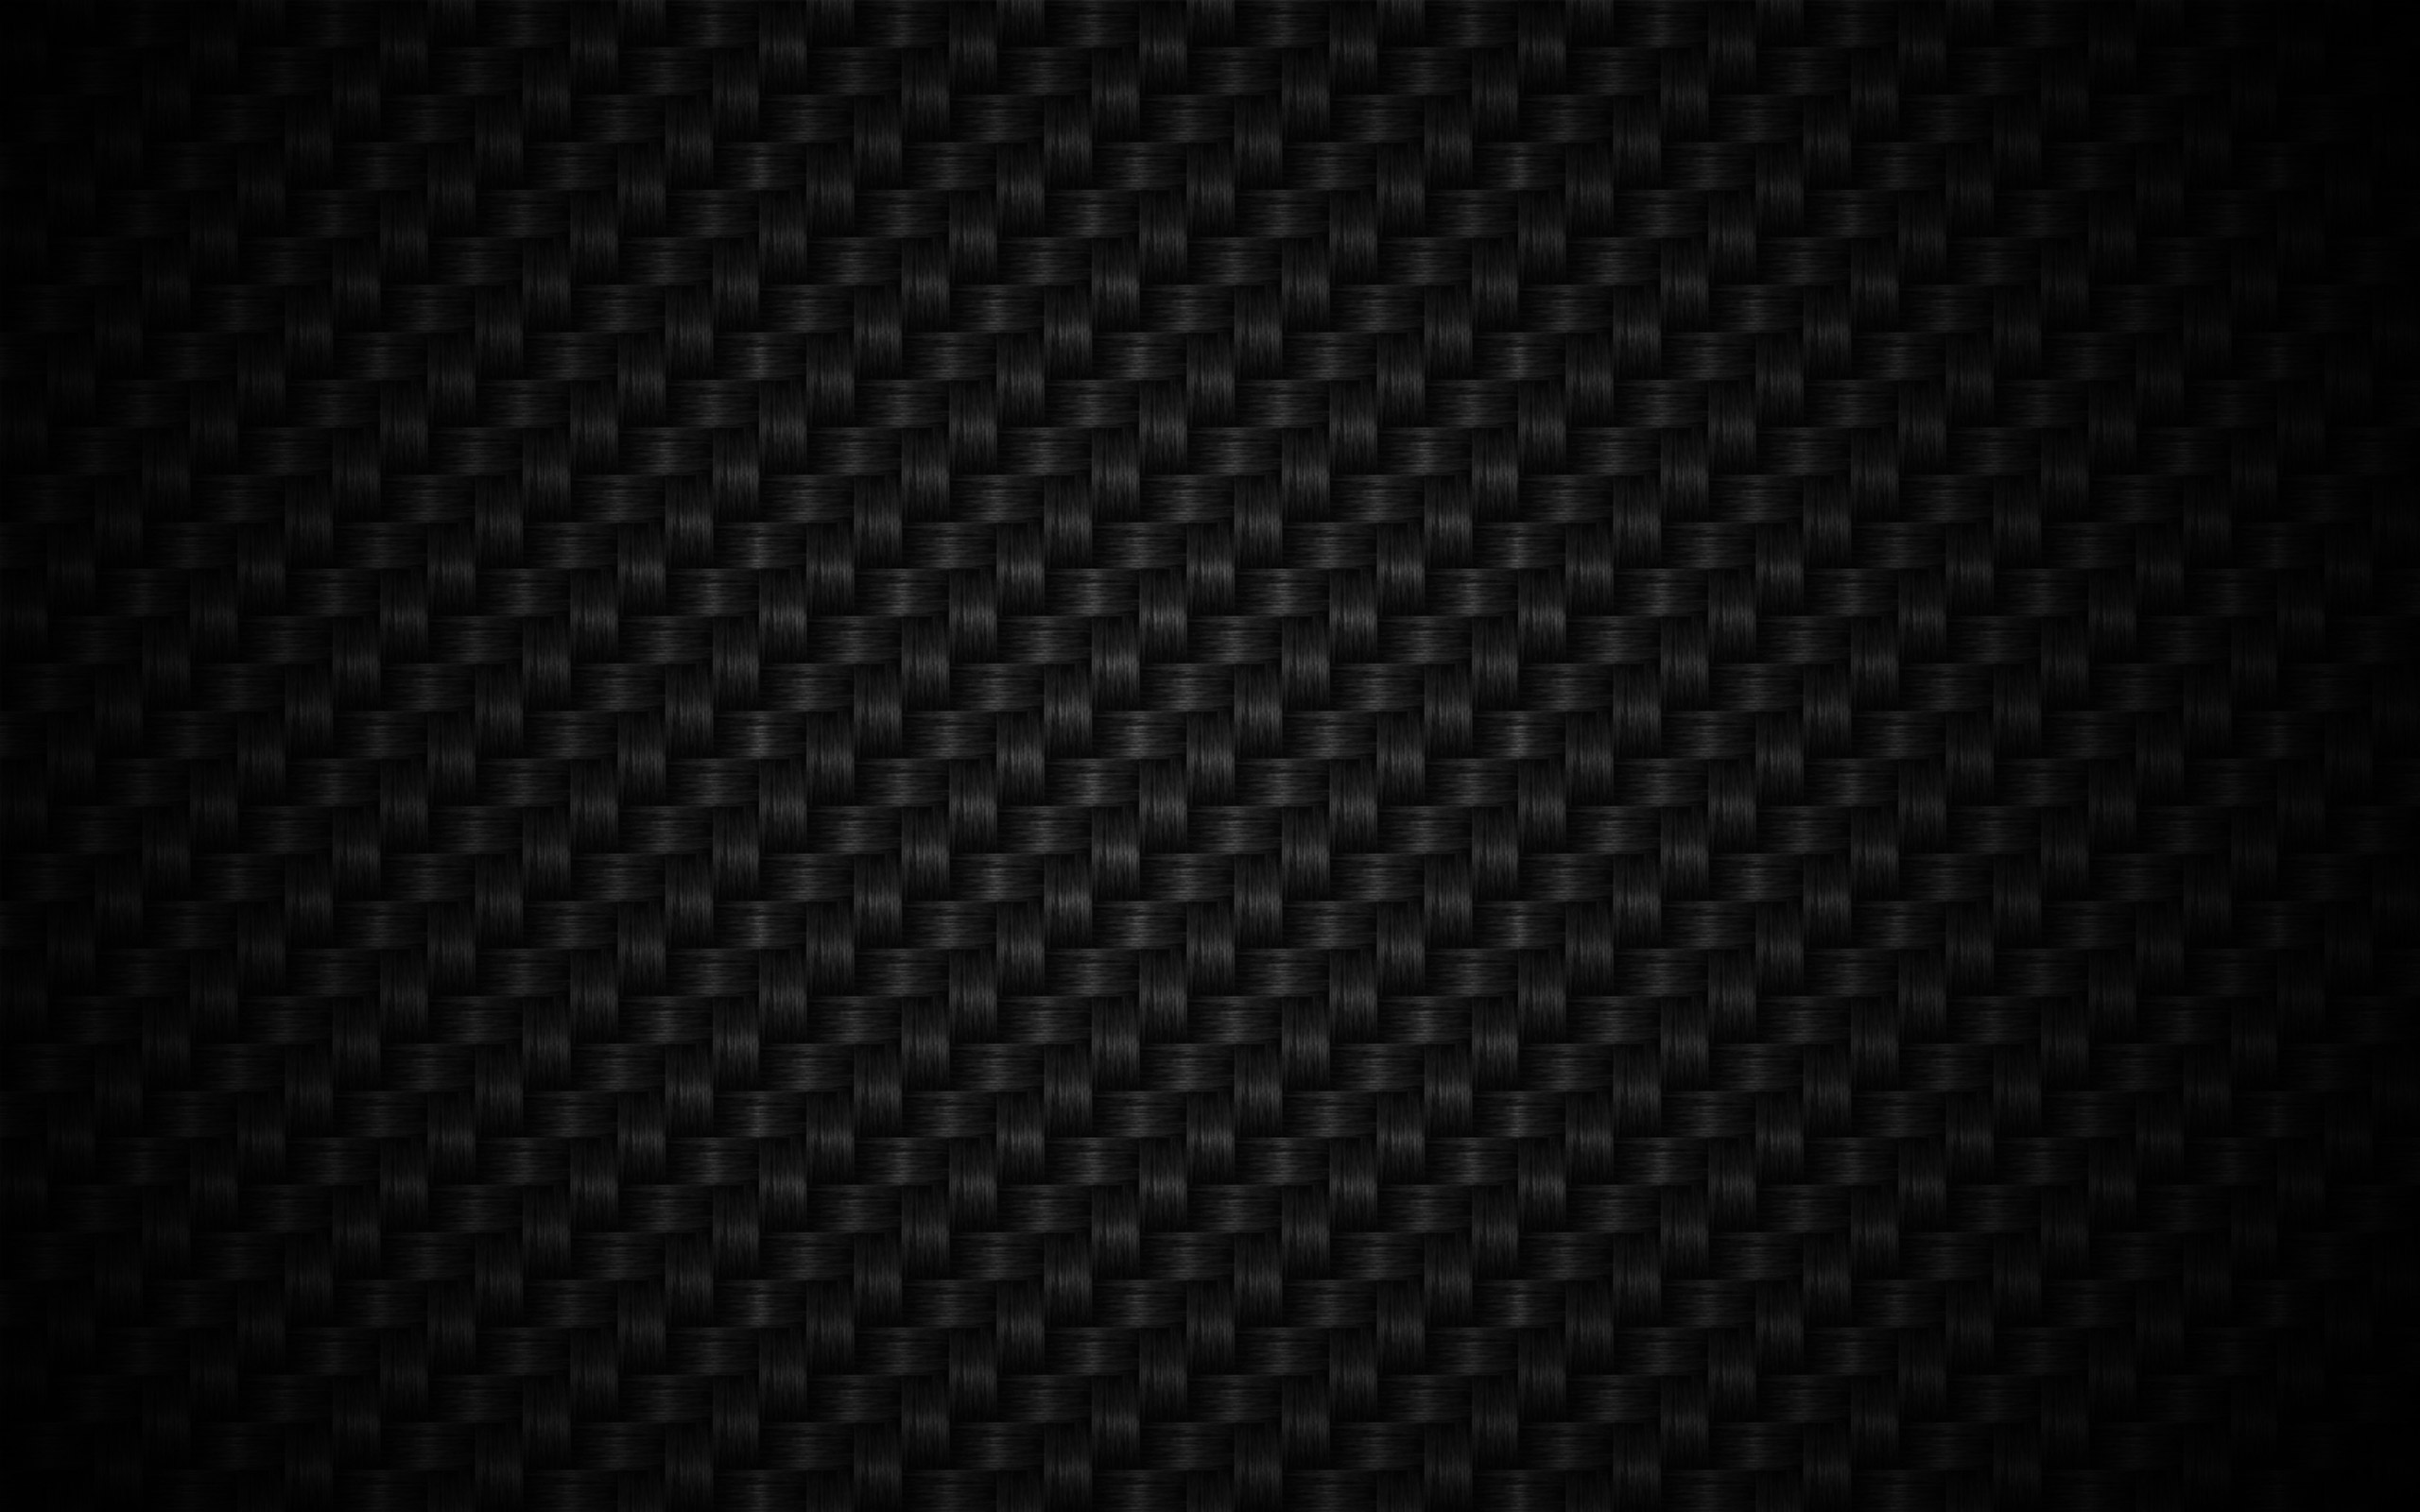 black wallpaper pattern - photo #7